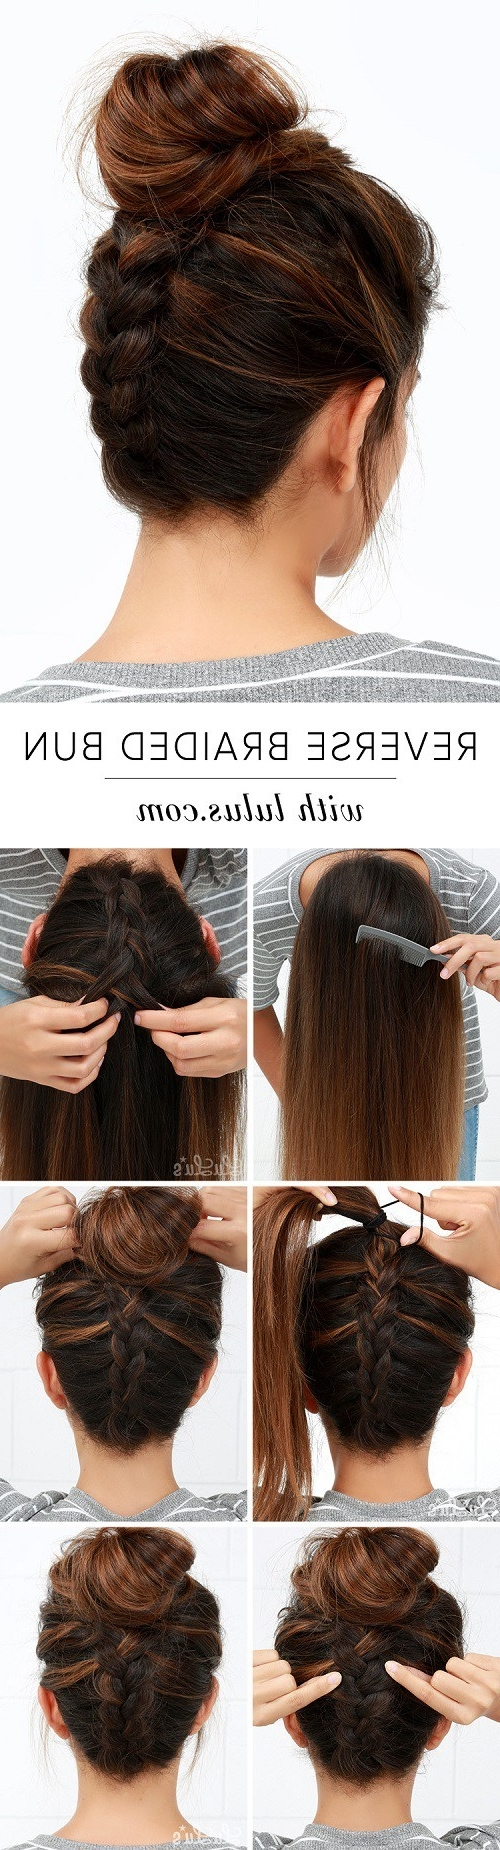 Best And Newest Quick Braided Hairstyles For Medium Length Hair With Regard To 20 Easy Elegant Step By Step Hair Tutorials For Long & Medium Hair (View 5 of 15)